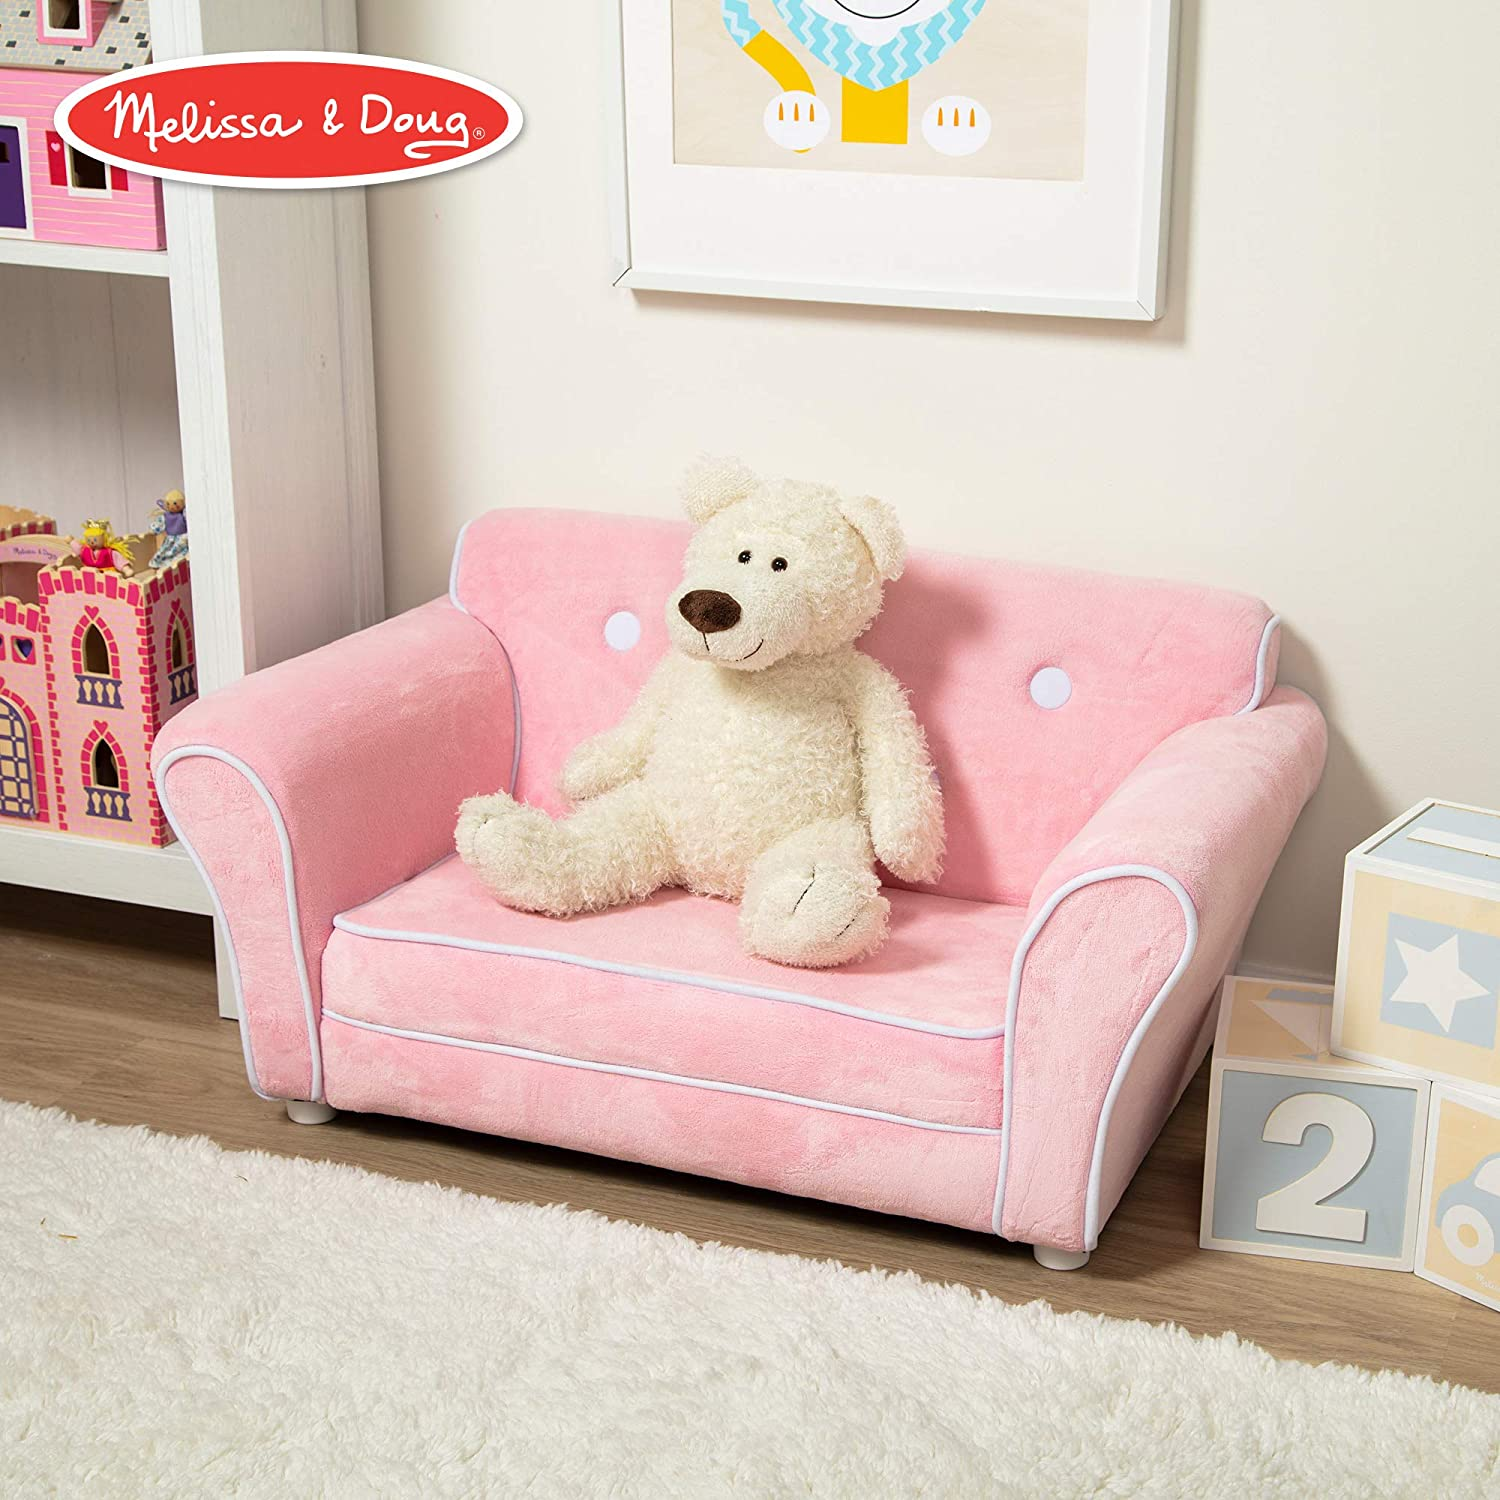 Melissa & Doug Child's Sofa - Pink Plush Children's Furniture